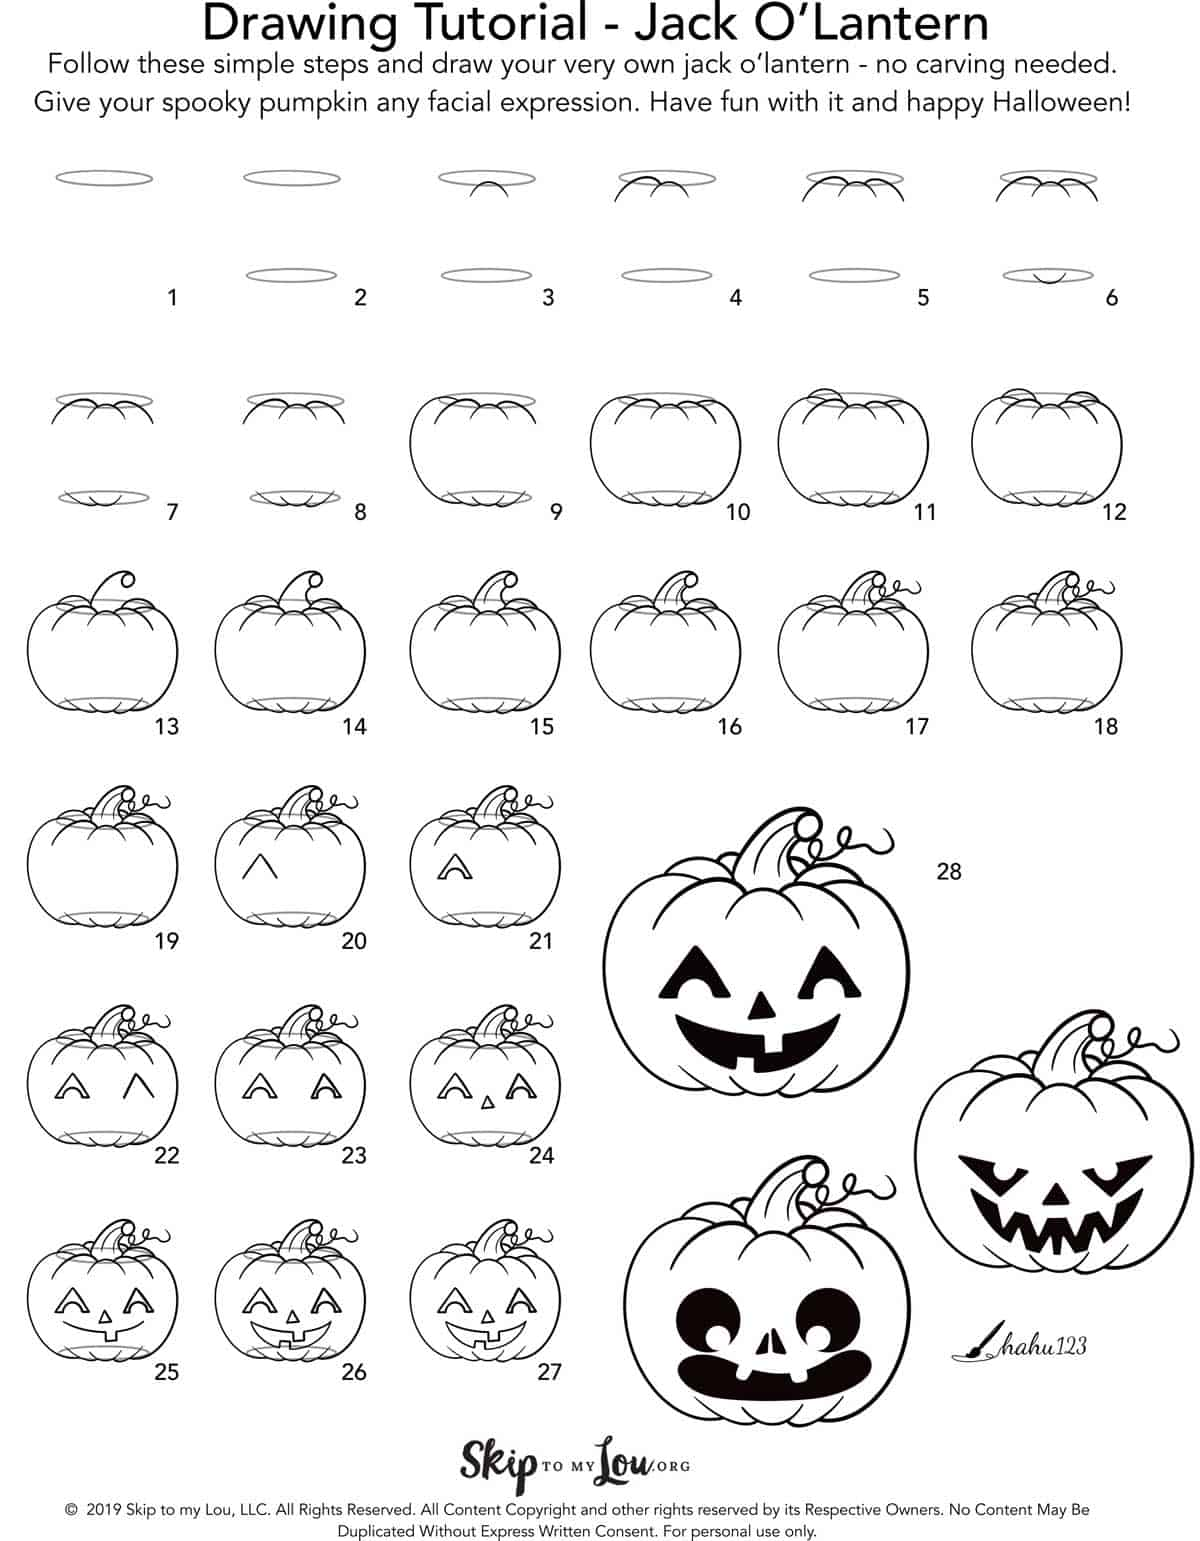 Easy Jack O Lantern Drawing Tutorial Skip To My Lou